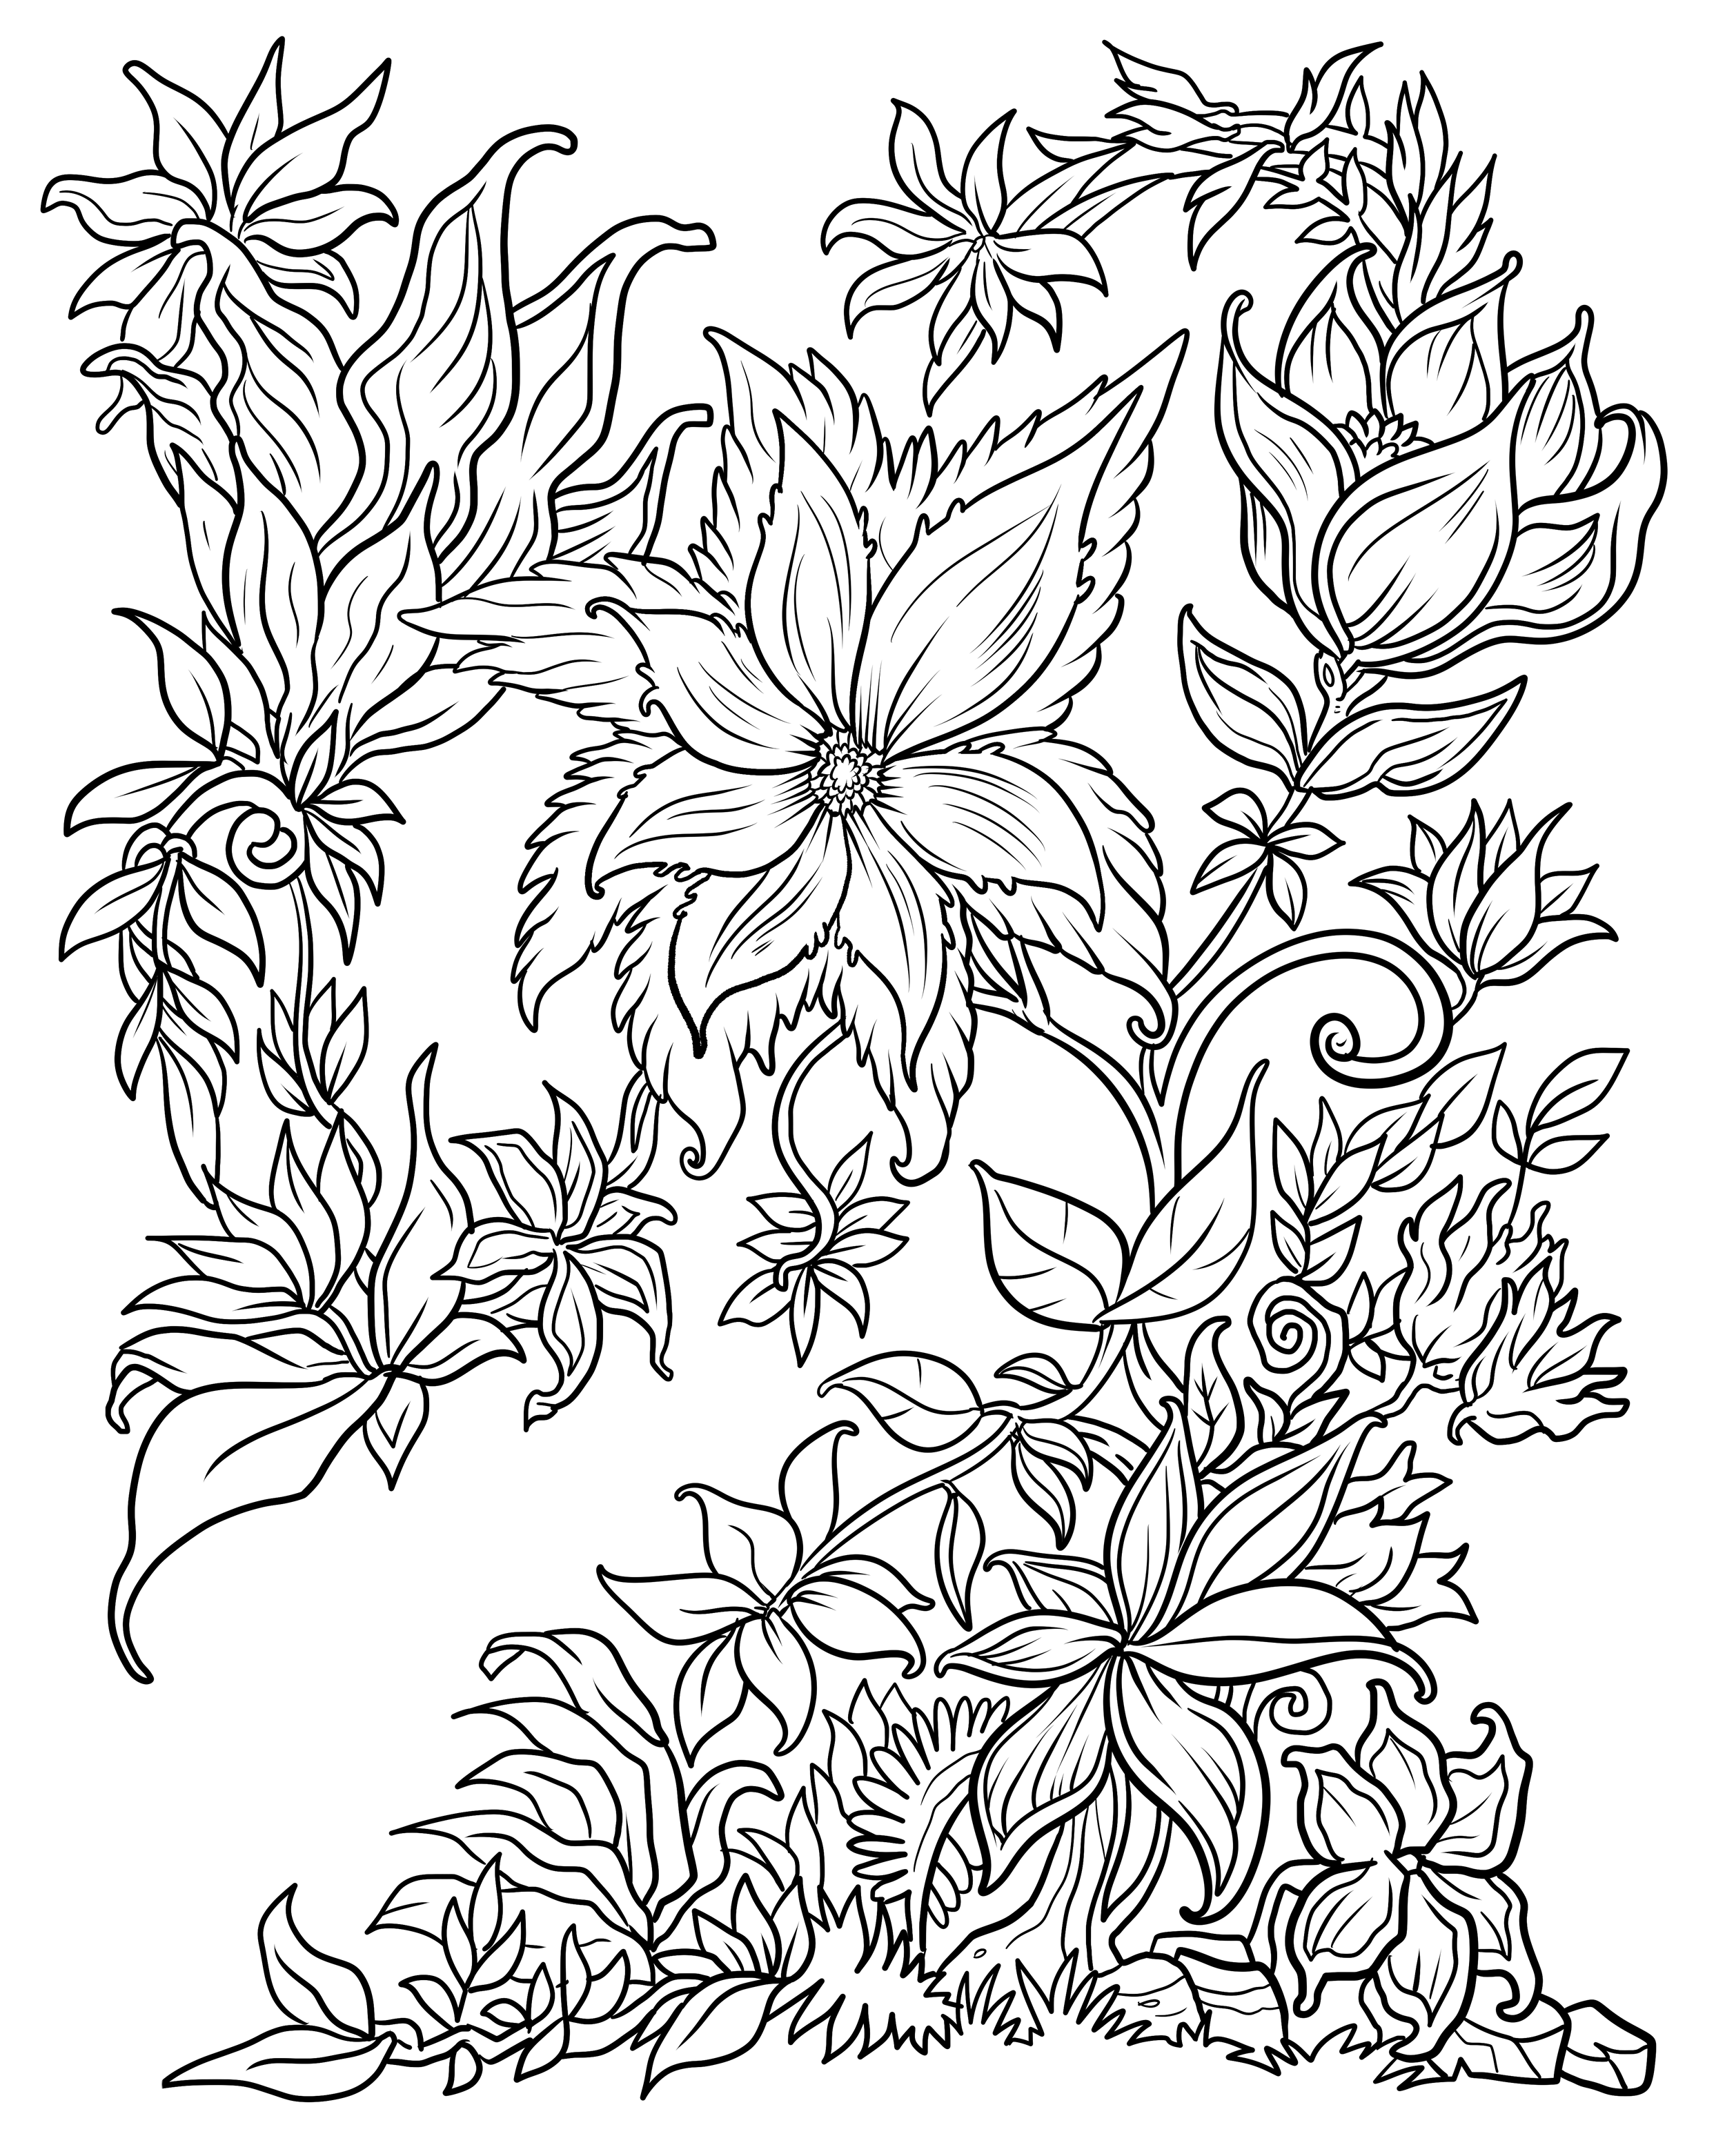 coloring pages of adults 10 toothy adult coloring pages printable off the cusp of coloring adults pages